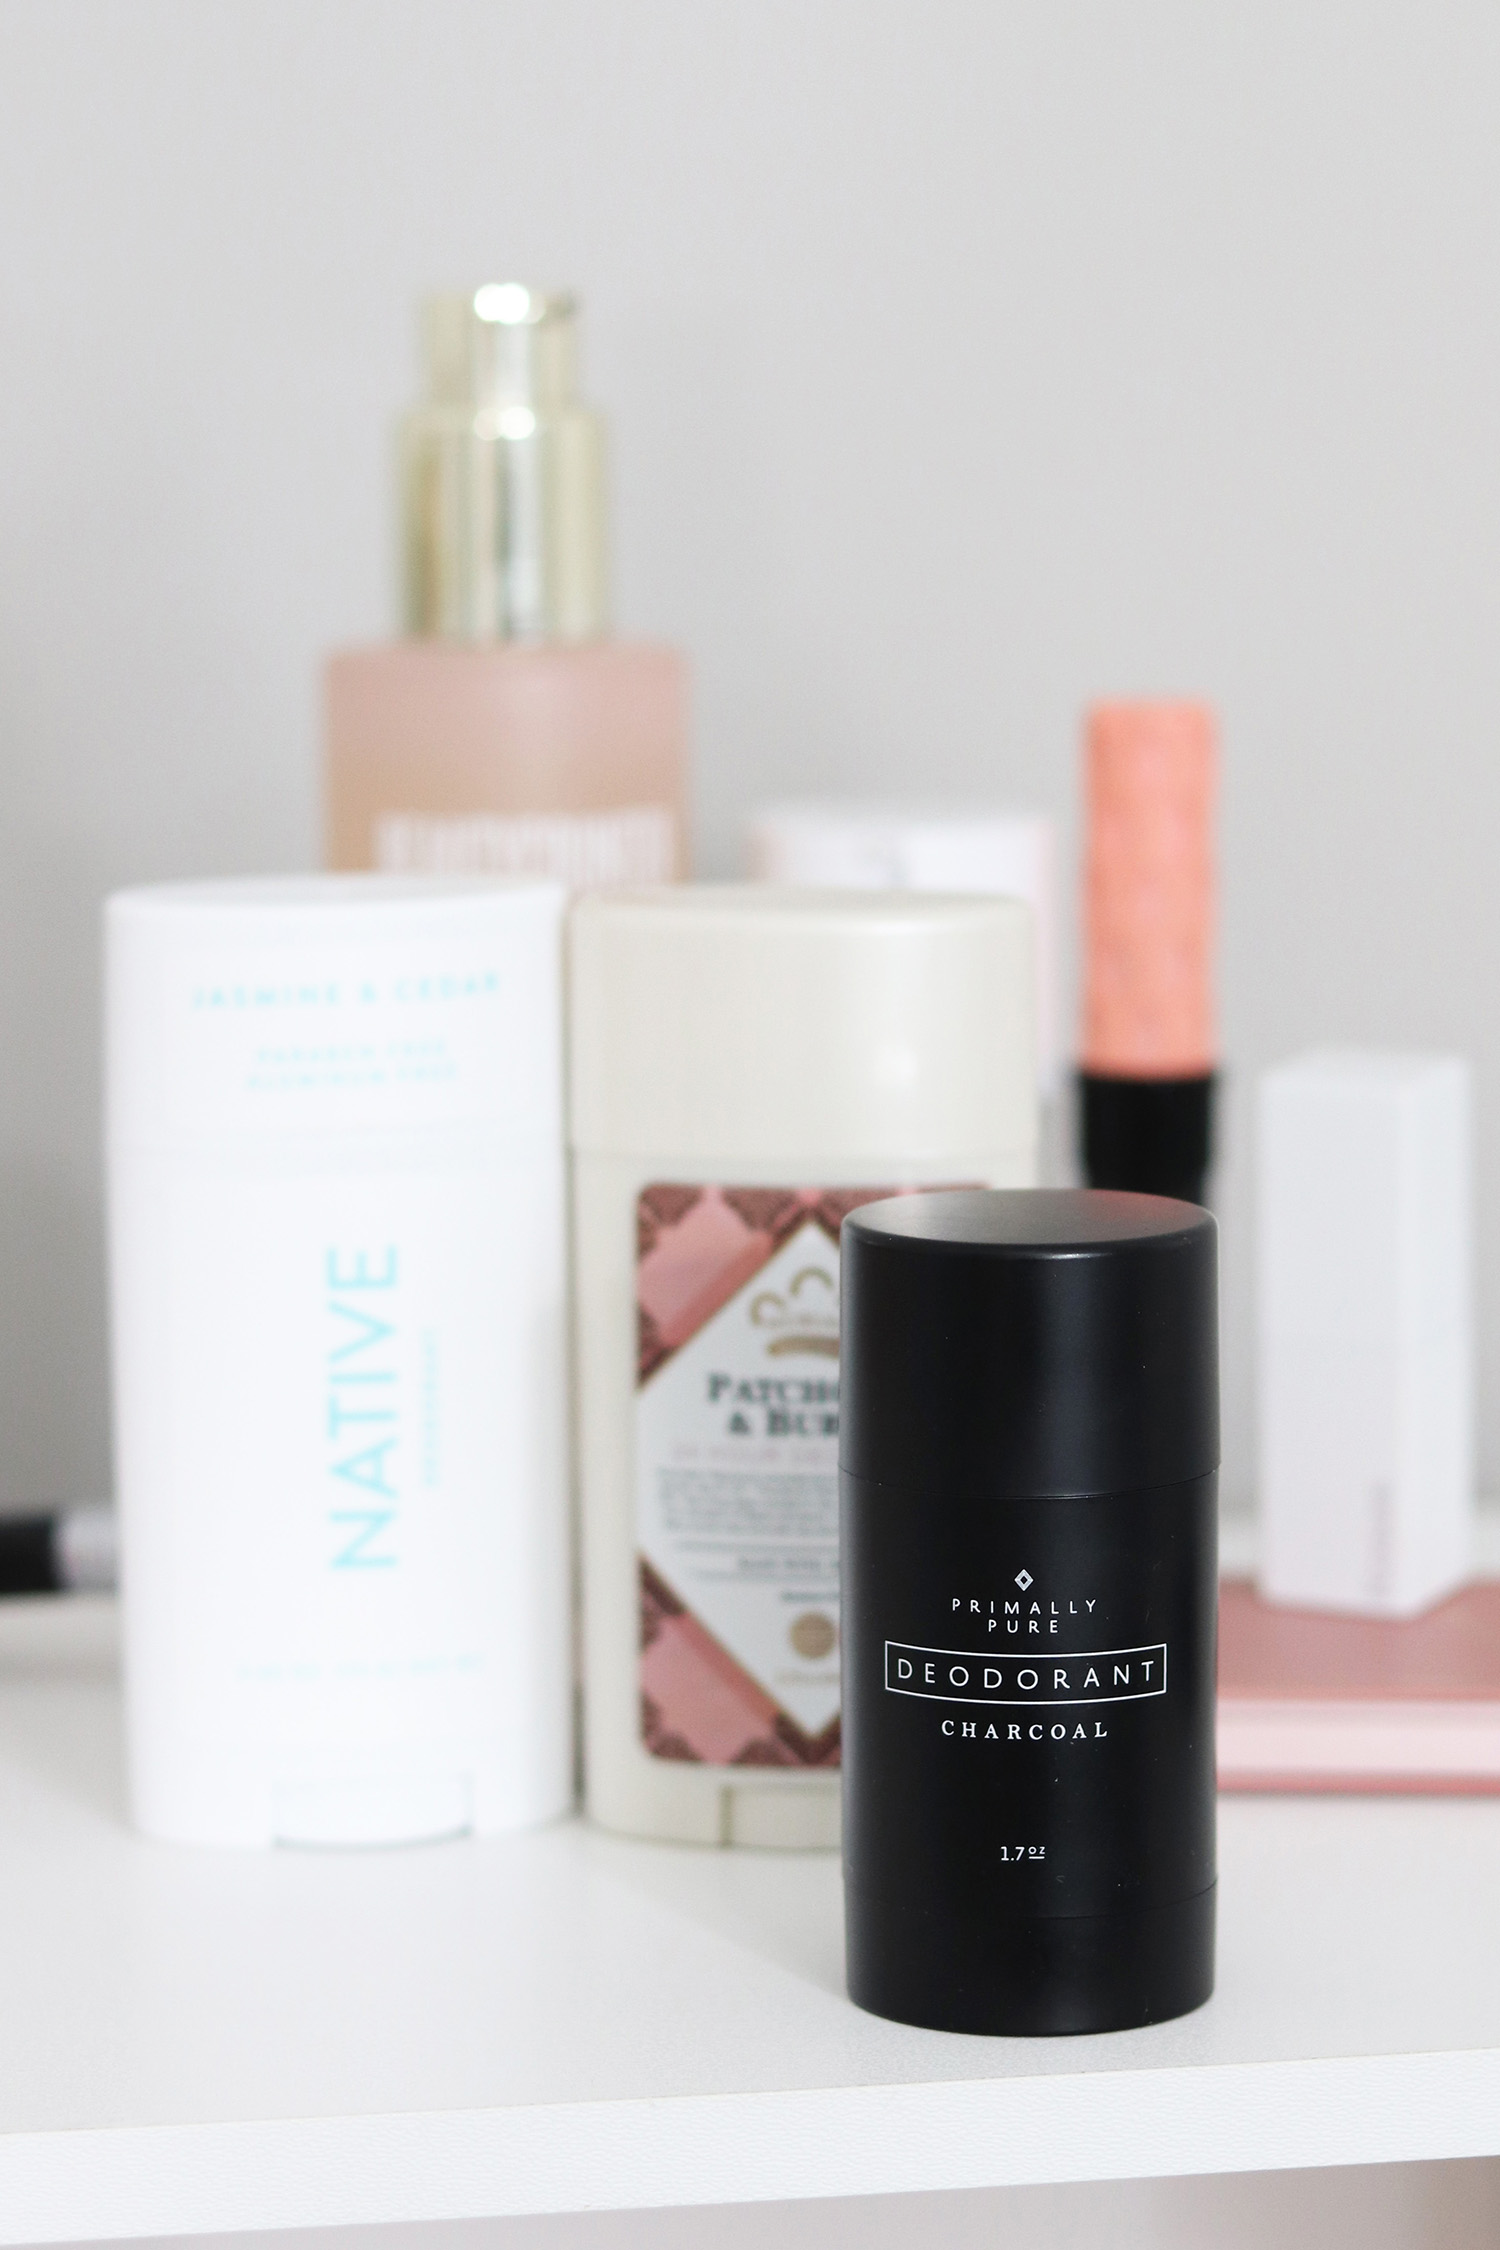 primally pure natural deodorant charcoal review discount code | brighter darling blog